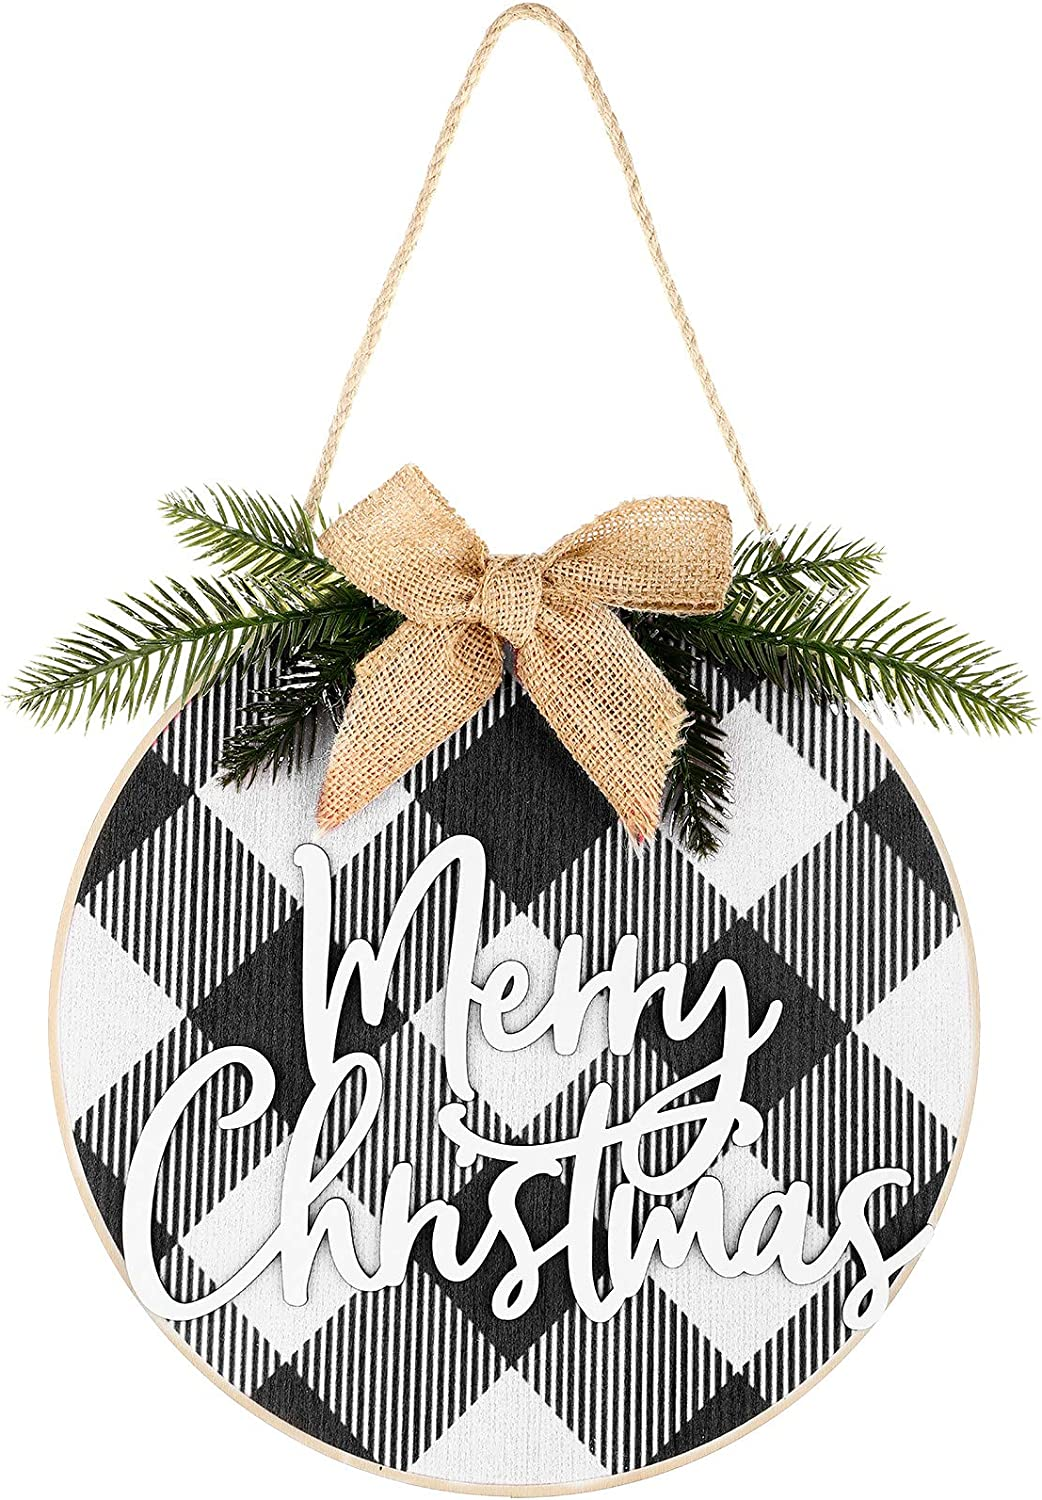 Jetec Merry Christmas Decorations Wreath Christmas Hanging Sign Rustic Burlap Wooden Holiday Decor for Christmas Home Window Wall Farmhouse Indoor Outdoor Decorations (White and Black)